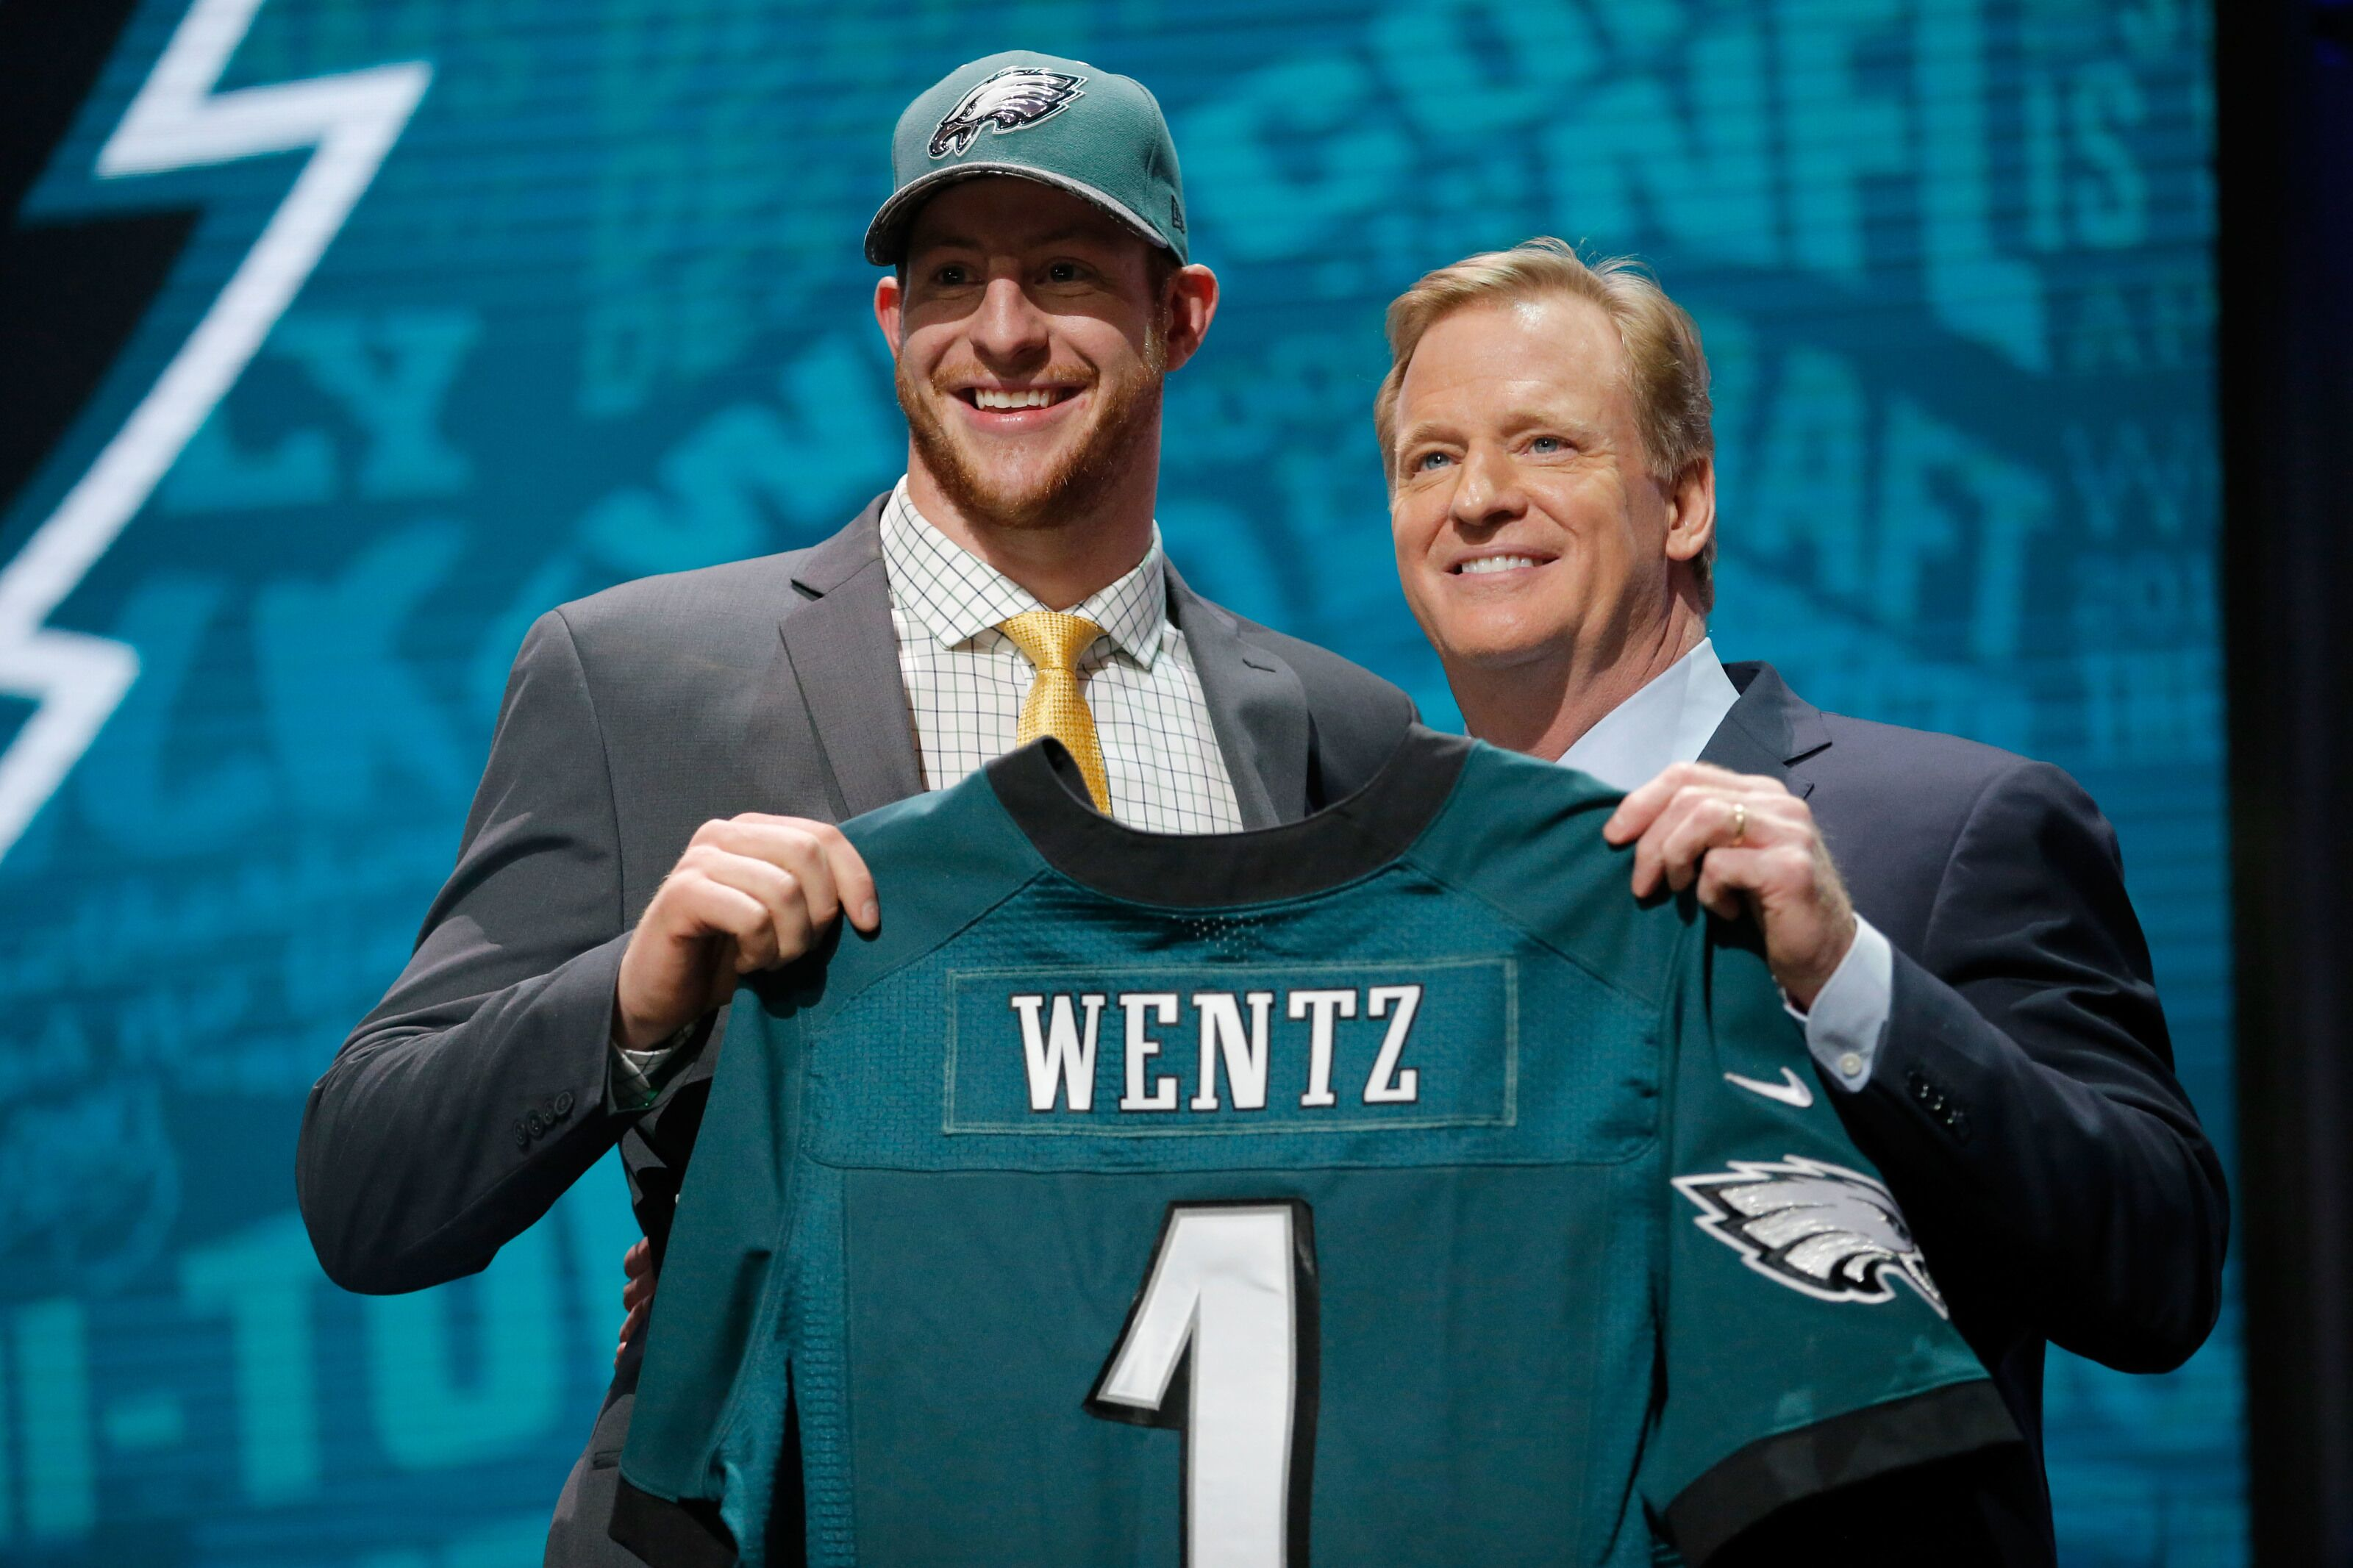 There's a good chance the Eagles draft a quarterback this year